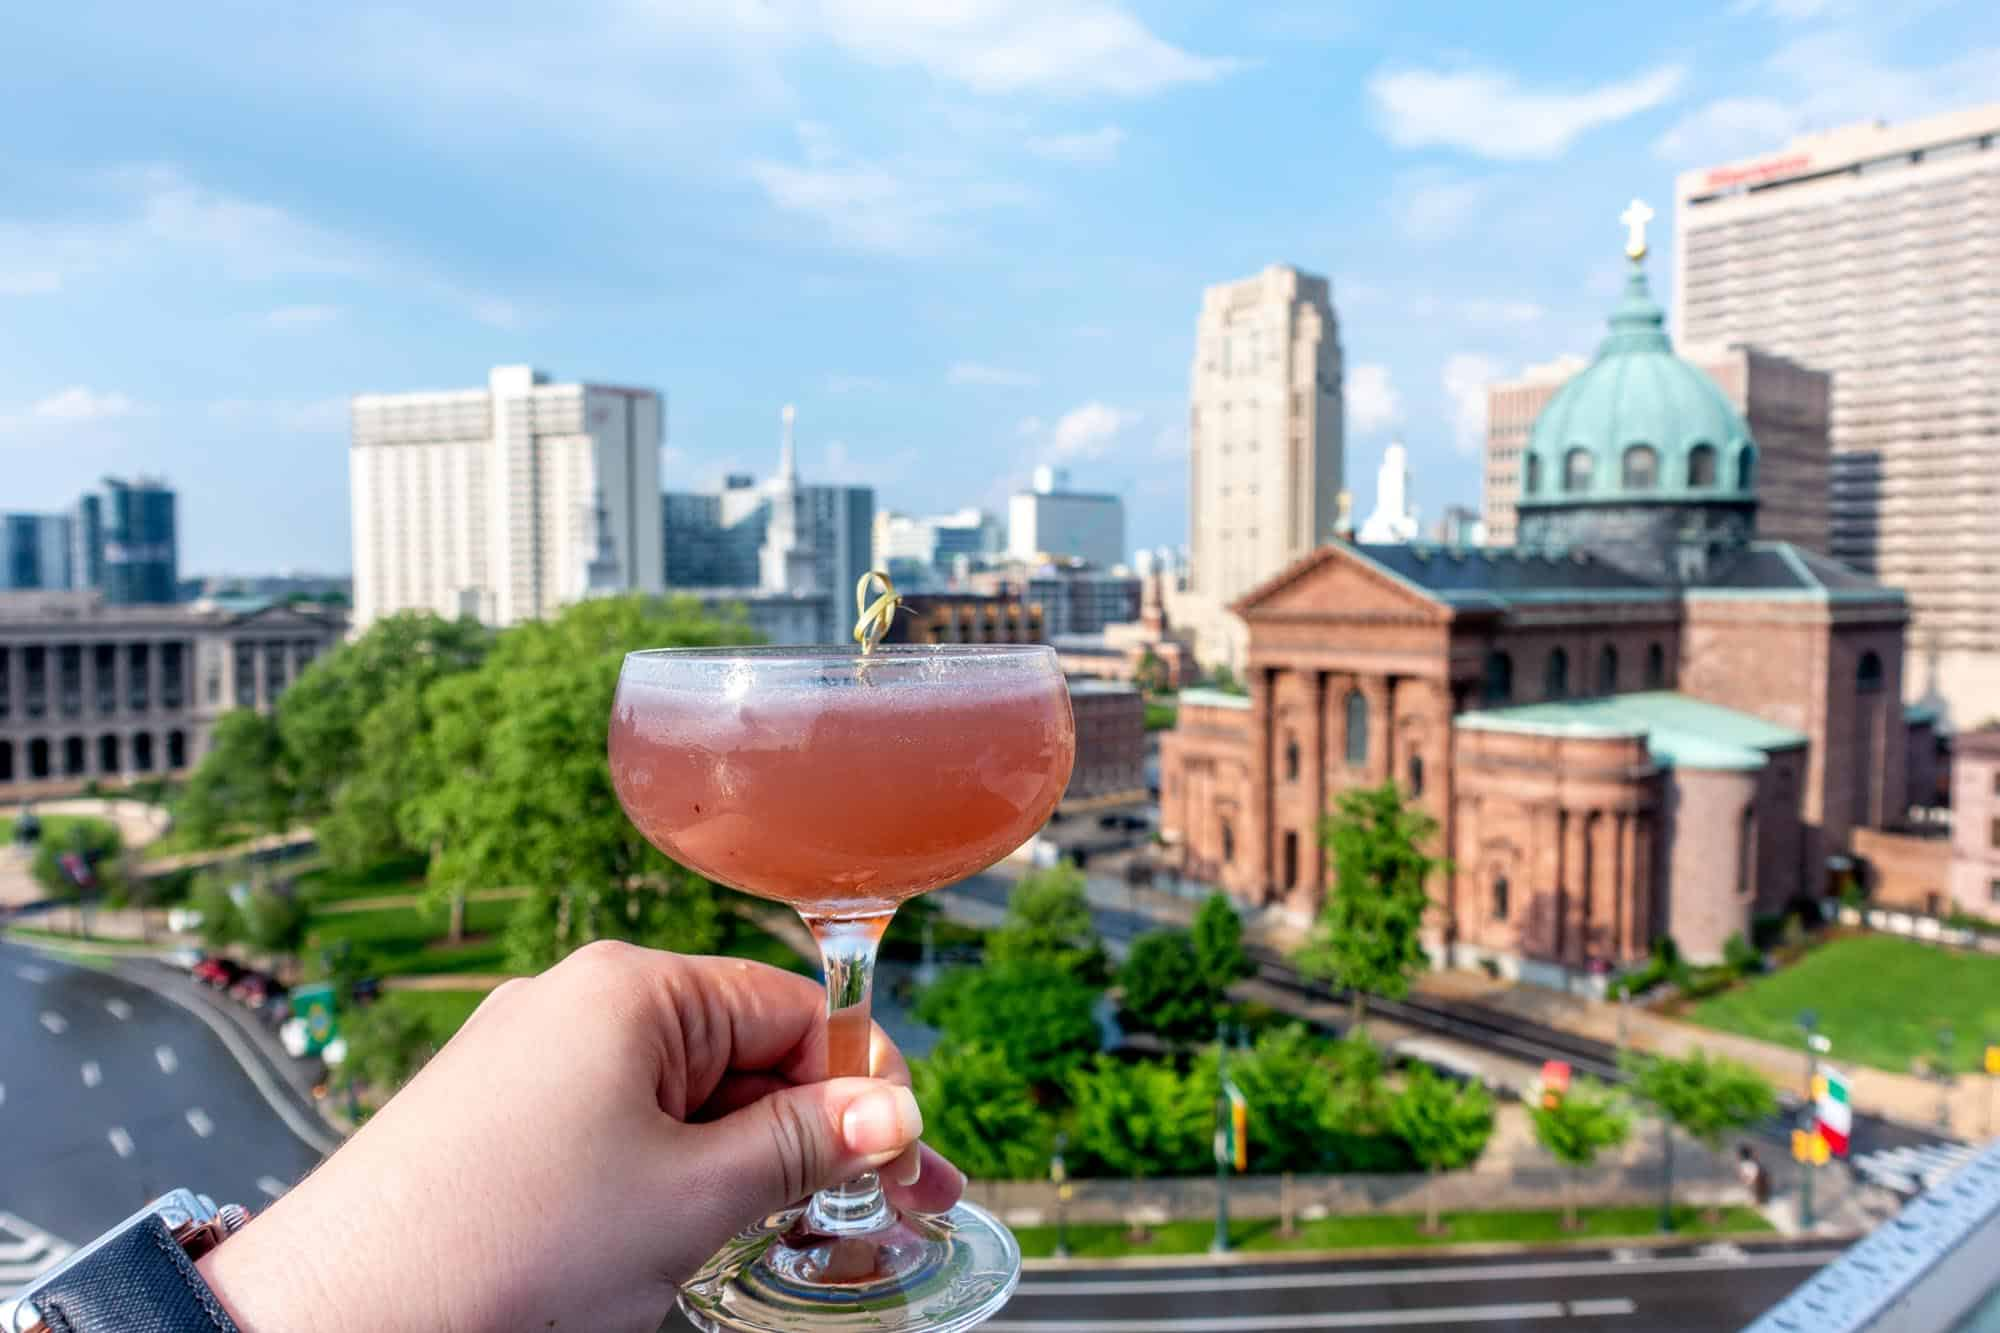 Hand holding a cocktail glass in front of a view of a park and ornate building below